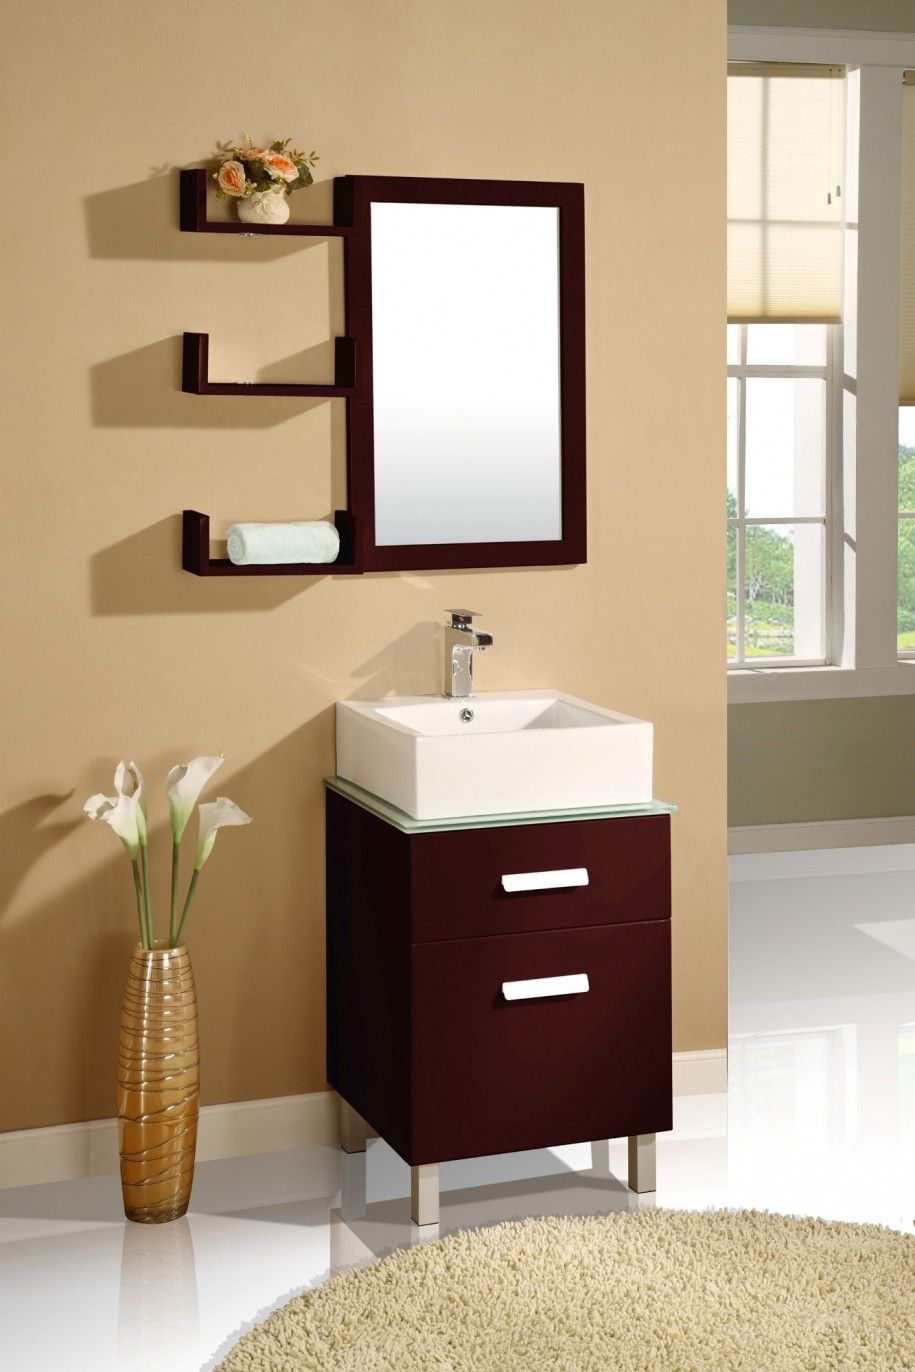 Simple Dark Wood Bathroom Mirrors With Shelves And Small Dark Wood Vanity  Cabinet And White WashSimple Dark Wood Bathroom Mirrors With Shelves And Small Dark Wood  . Small Bathroom Mirrors. Home Design Ideas